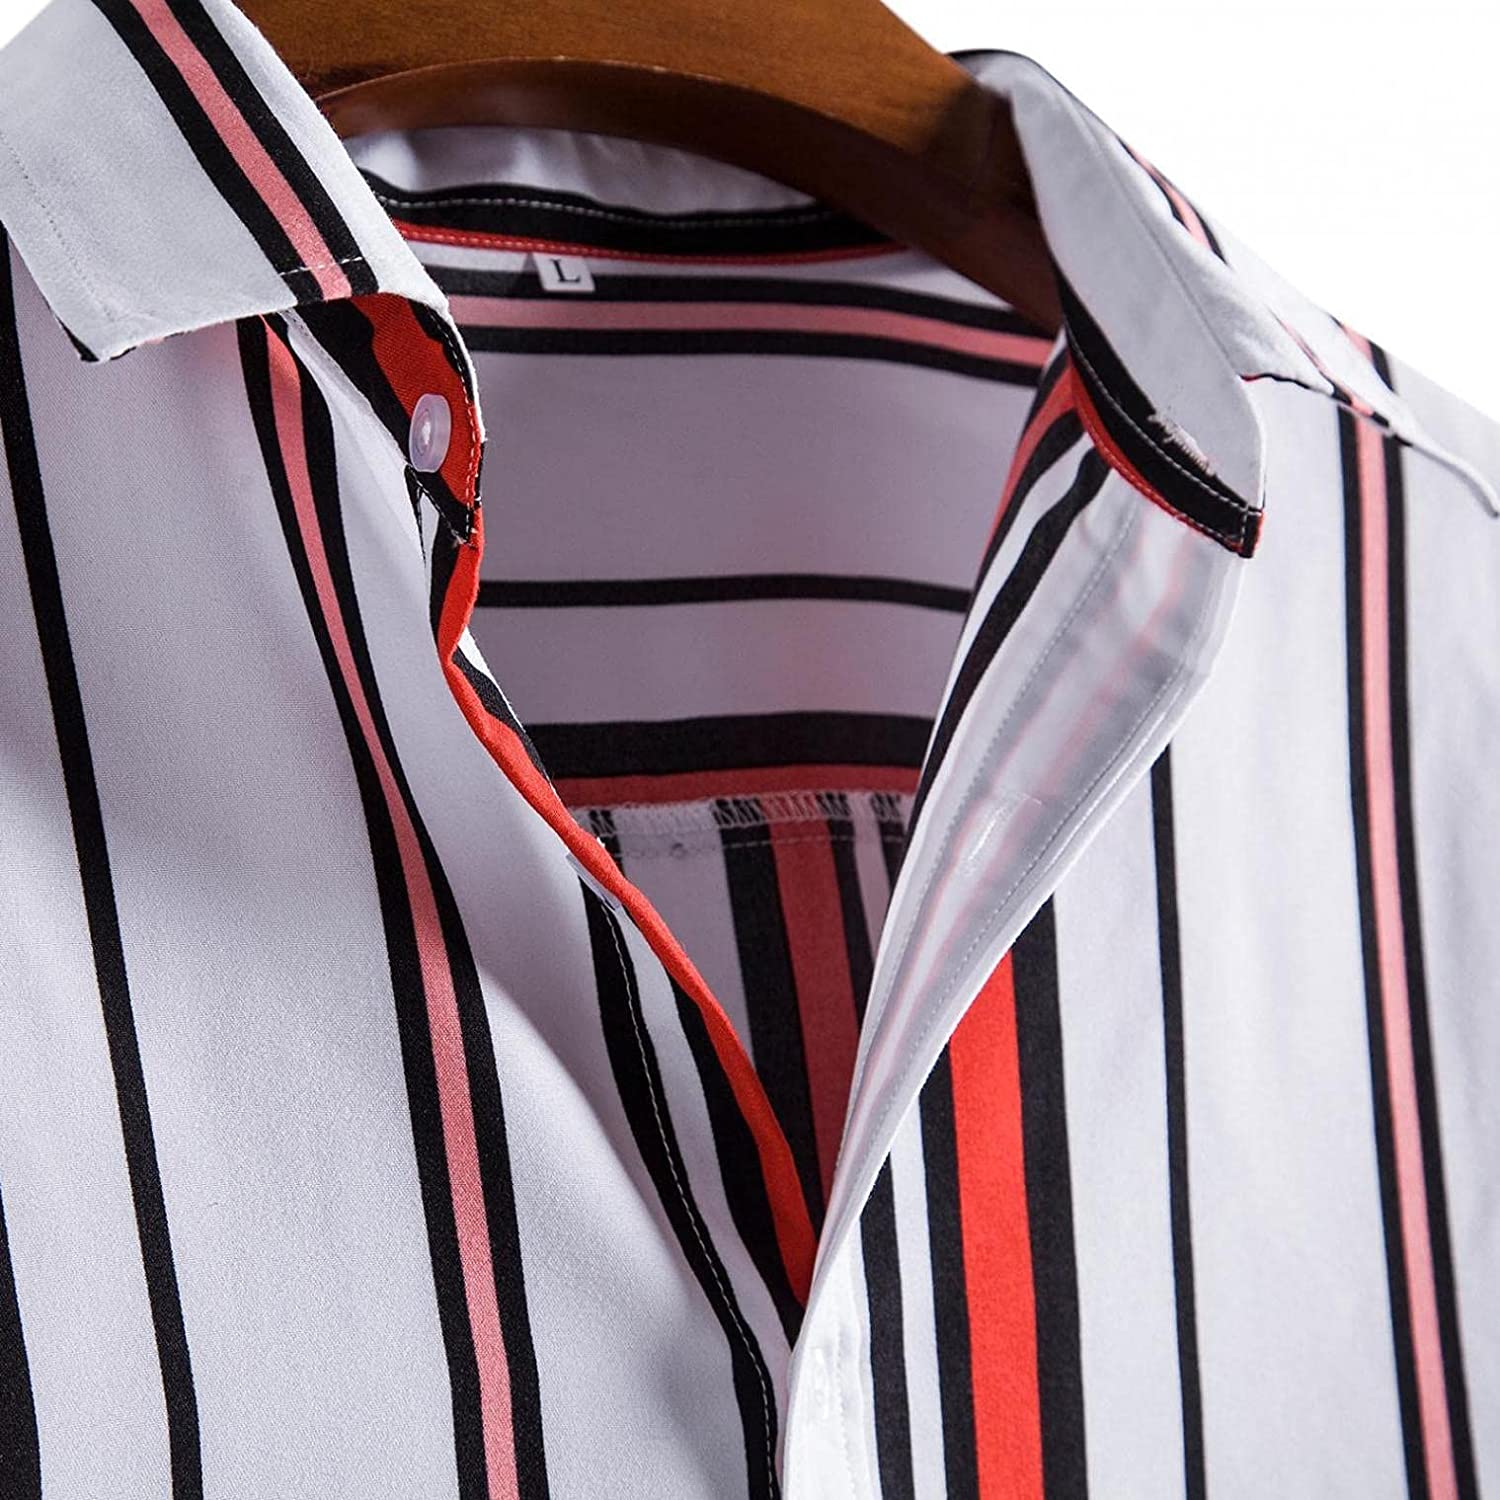 Huangse Casual Button Down Henley Shirts For Men Summer Short Sleeve T-Shirt Striped Loose Fit Top Tees